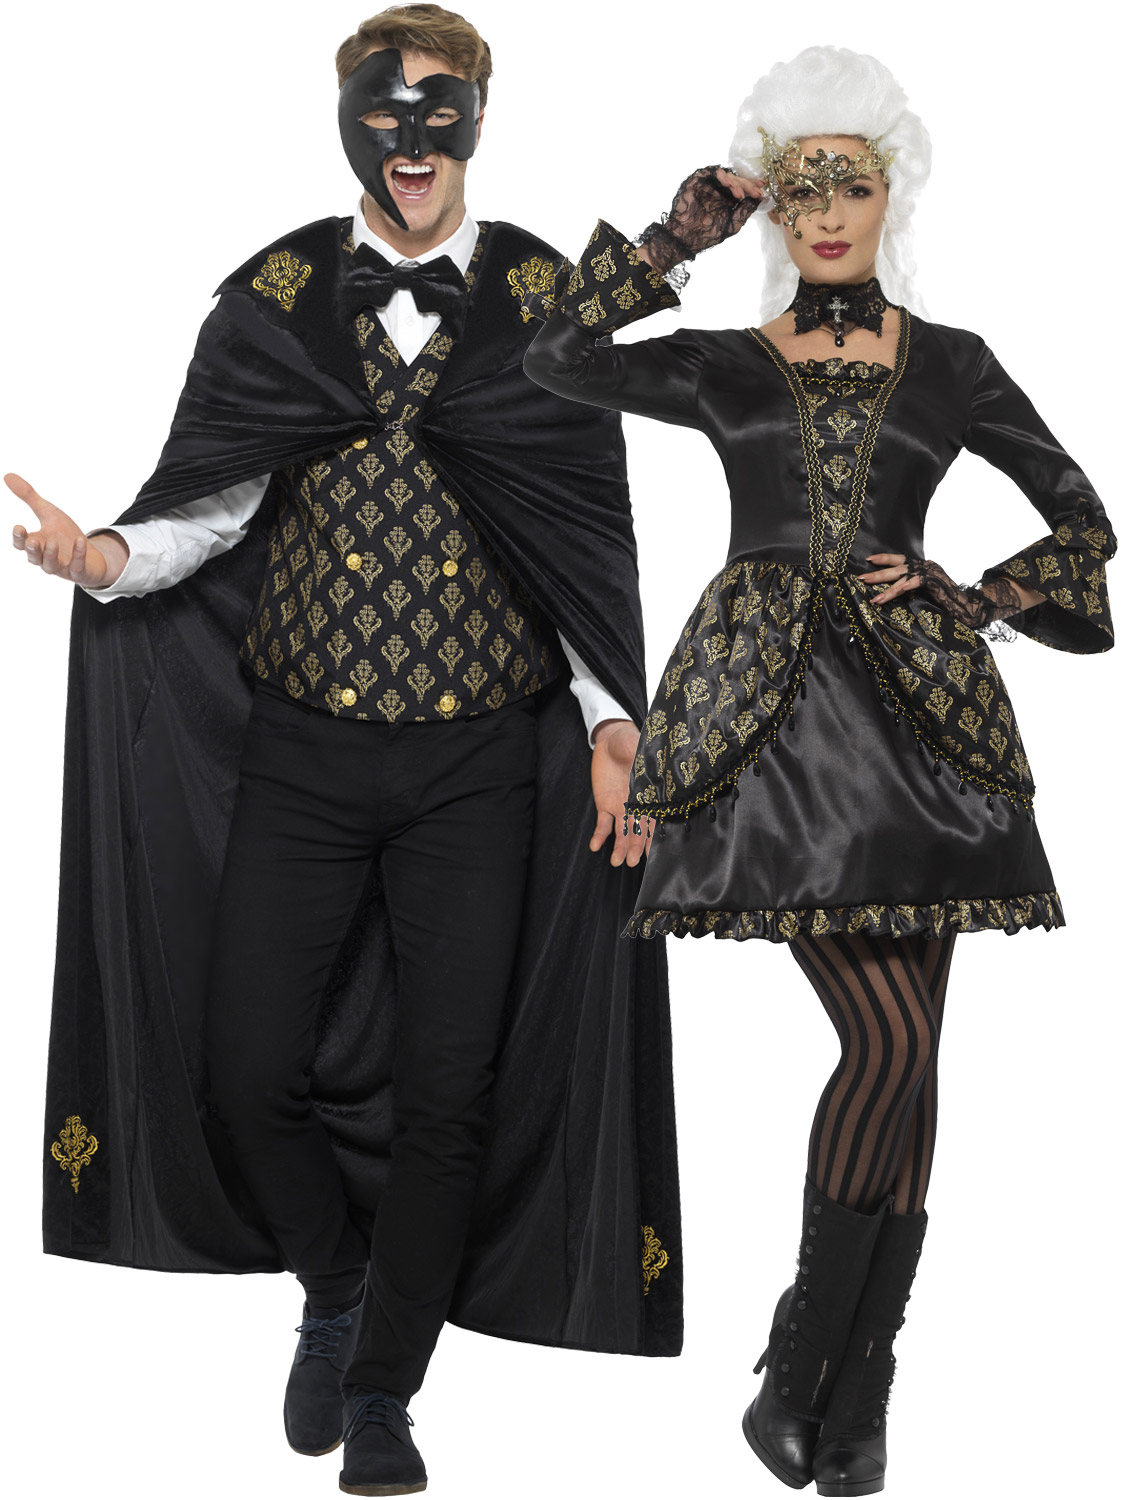 Adult Deluxe Masquerade Costume Mens Ladies Venezia Halloween Fancy Dress Outfit | eBay